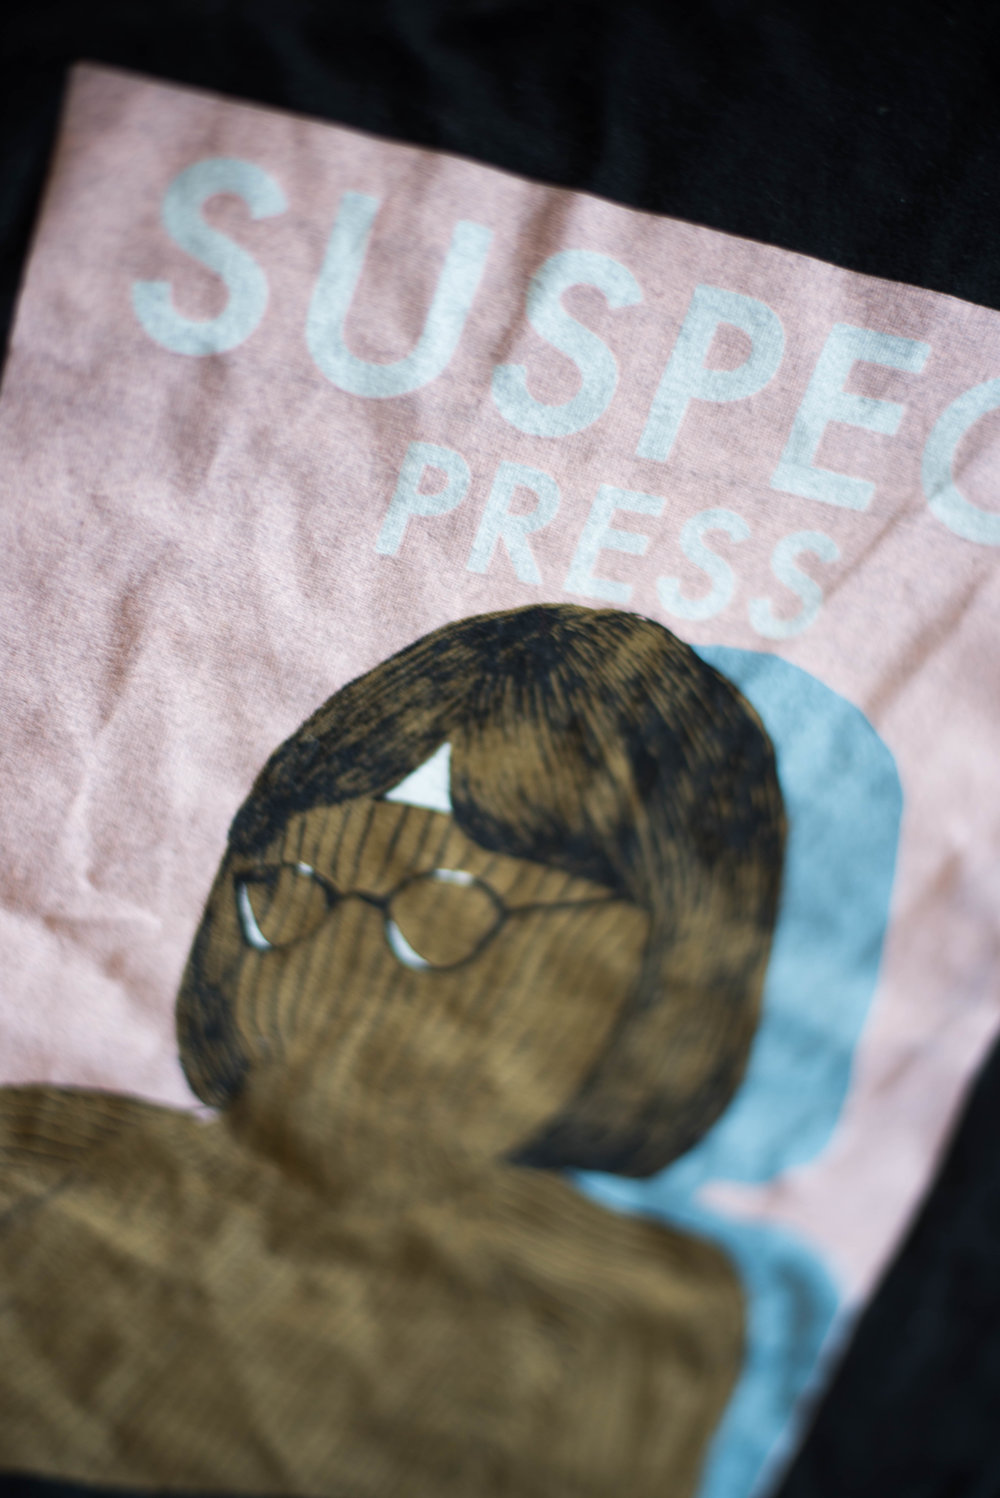 Suspect Press. Print method SOFT. Screen printed on a Next Level shirt. Printed by A Small Print Shop.